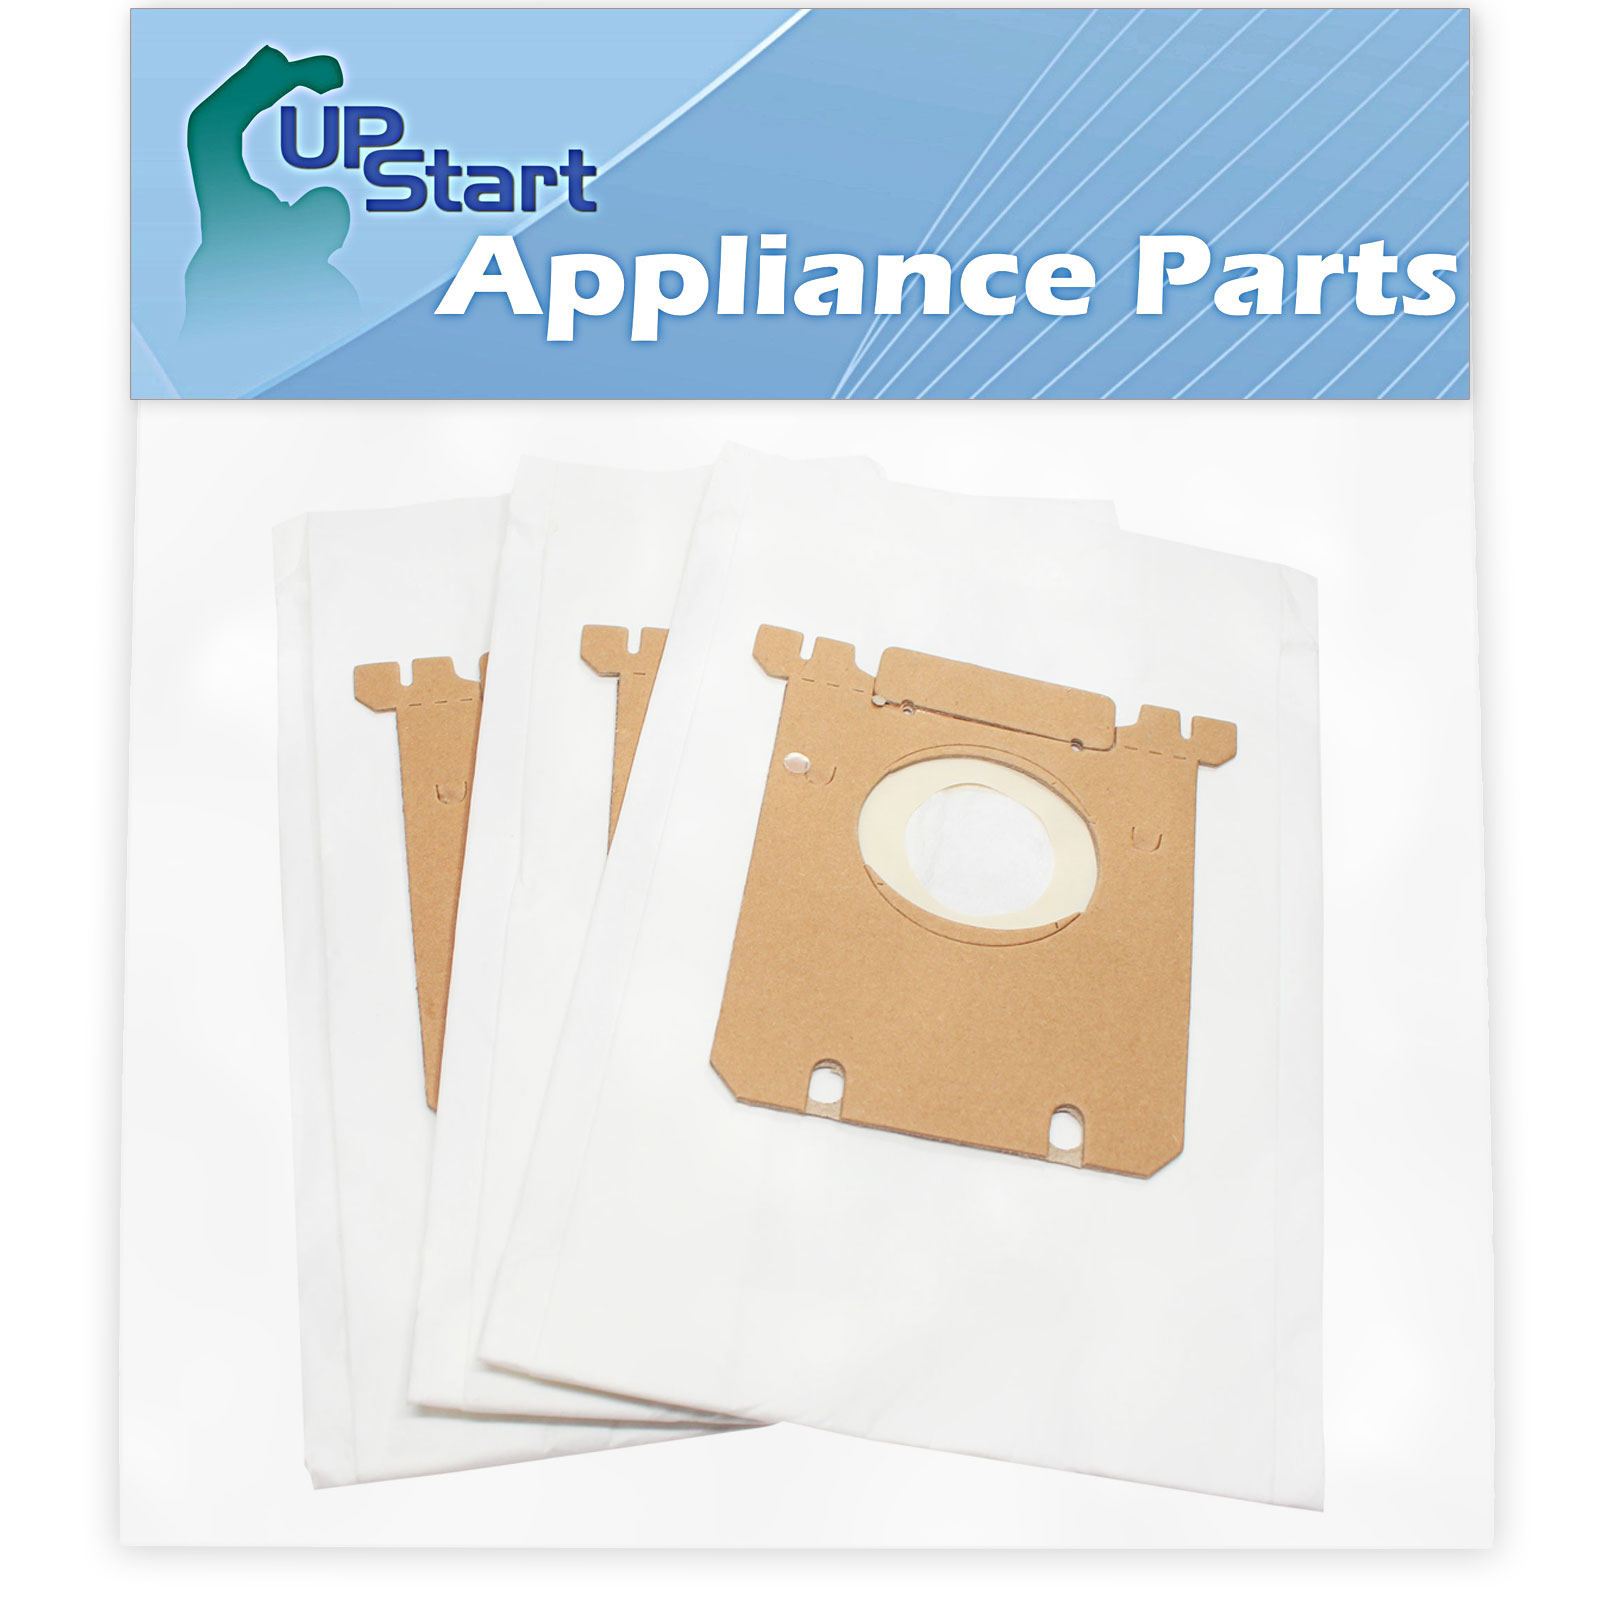 6 Replacement Electrolux EL6988E Oxygen Vacuum Bags & 2 Filter - Compatible Electrolux S-Bag Vacuum Bag & EL012B Filter - image 1 of 4